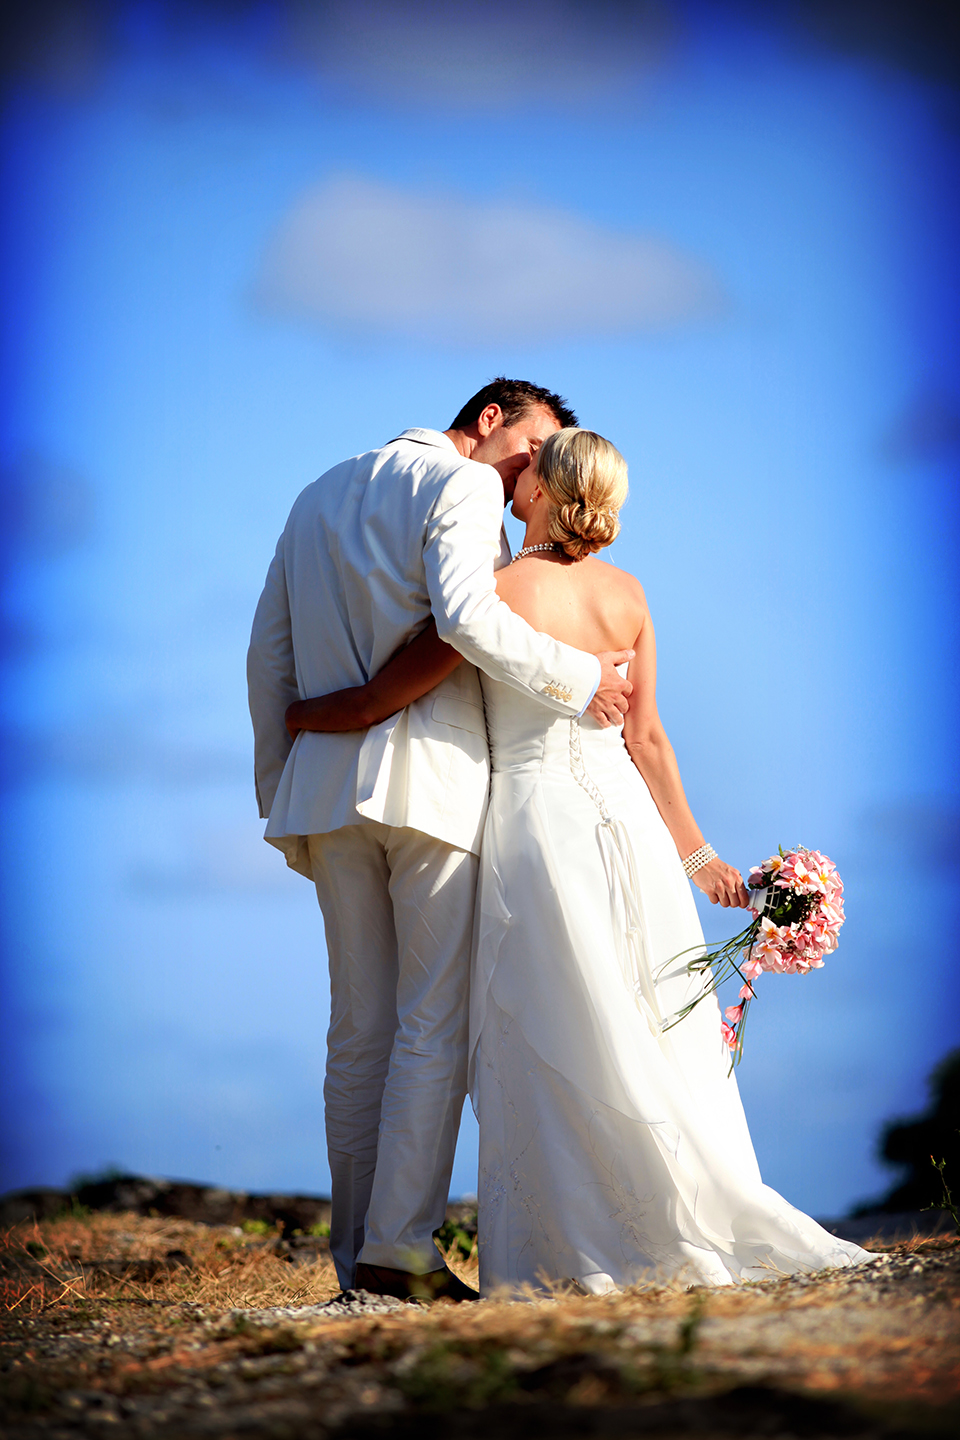 Mauritius_wedding_photographers_beachcomber_destination_wedding_Photography (111).jpg